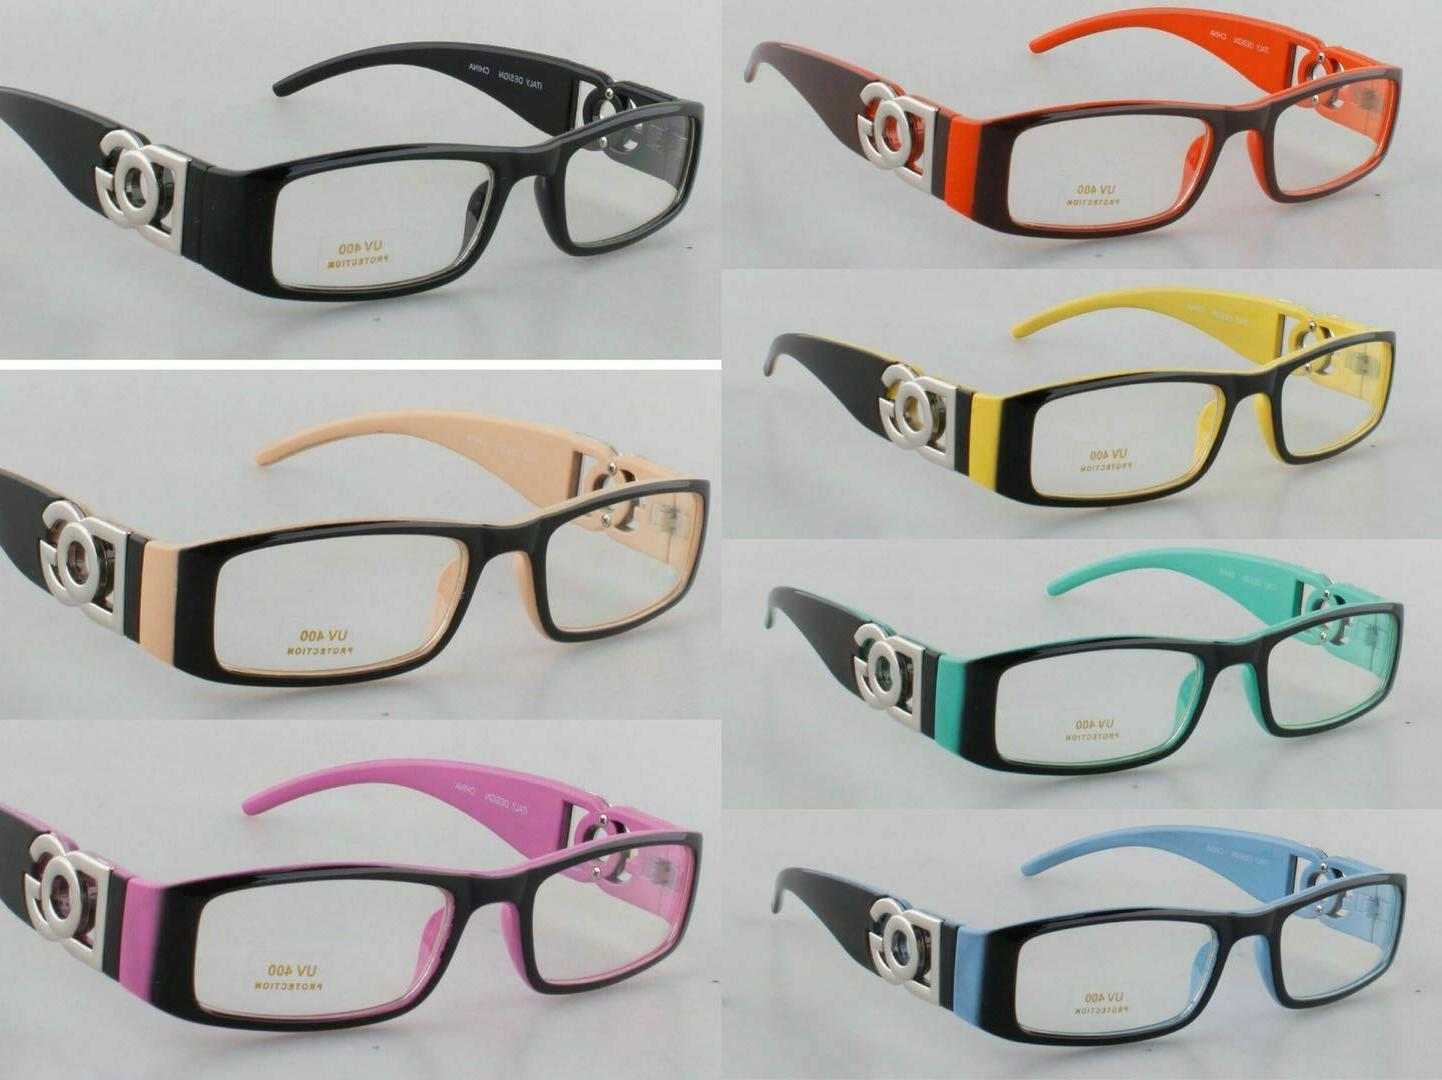 new clear lens rectangular frames glasses designer